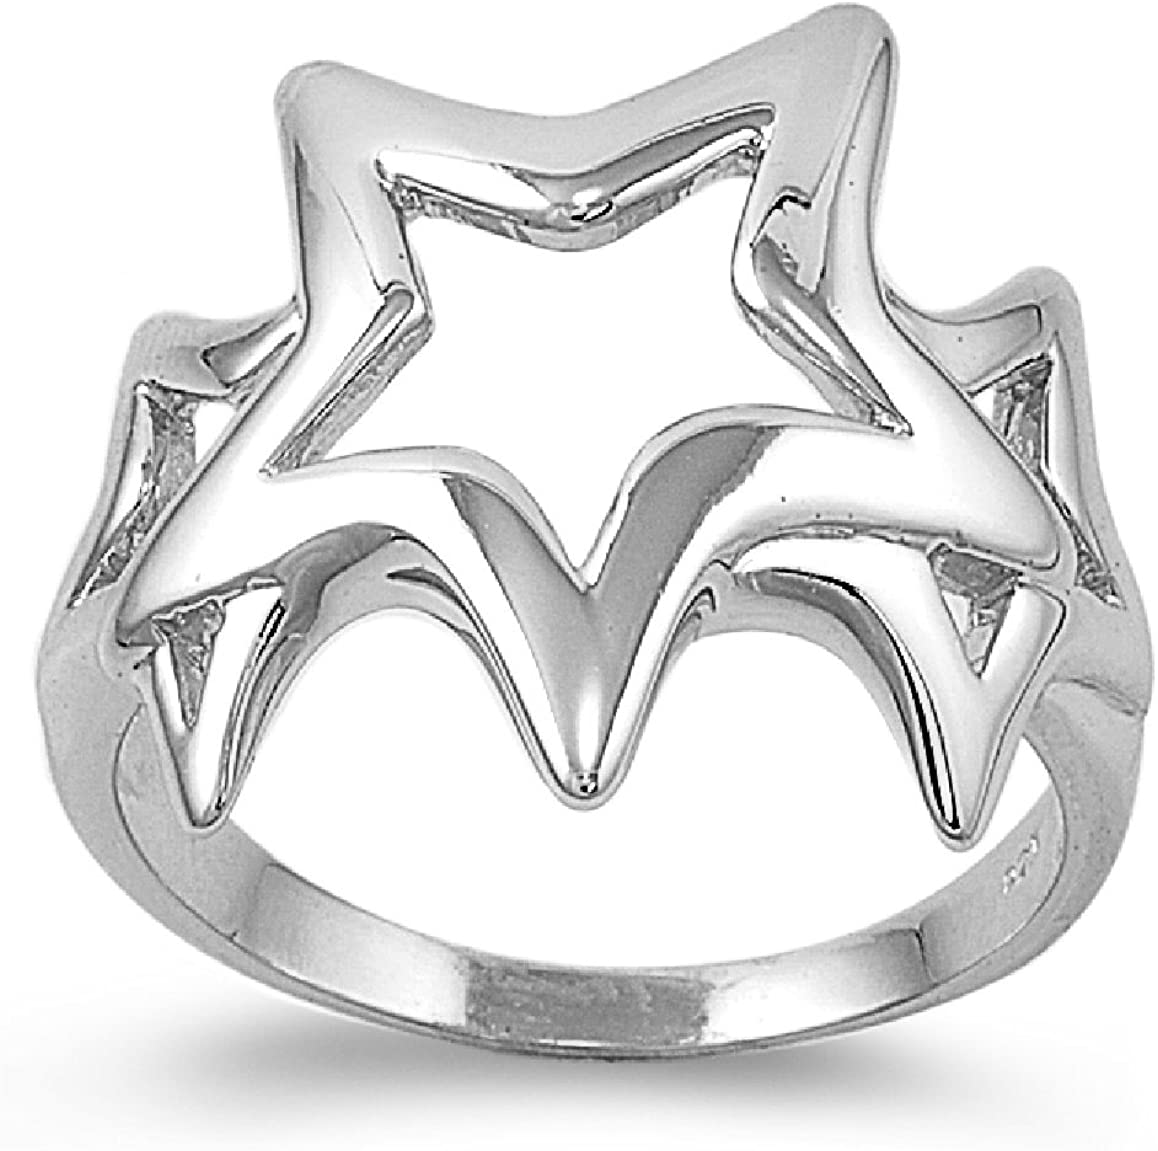 CloseoutWarehouse Sterling Silver Stars of Hope Ring (Sizes 4-15)